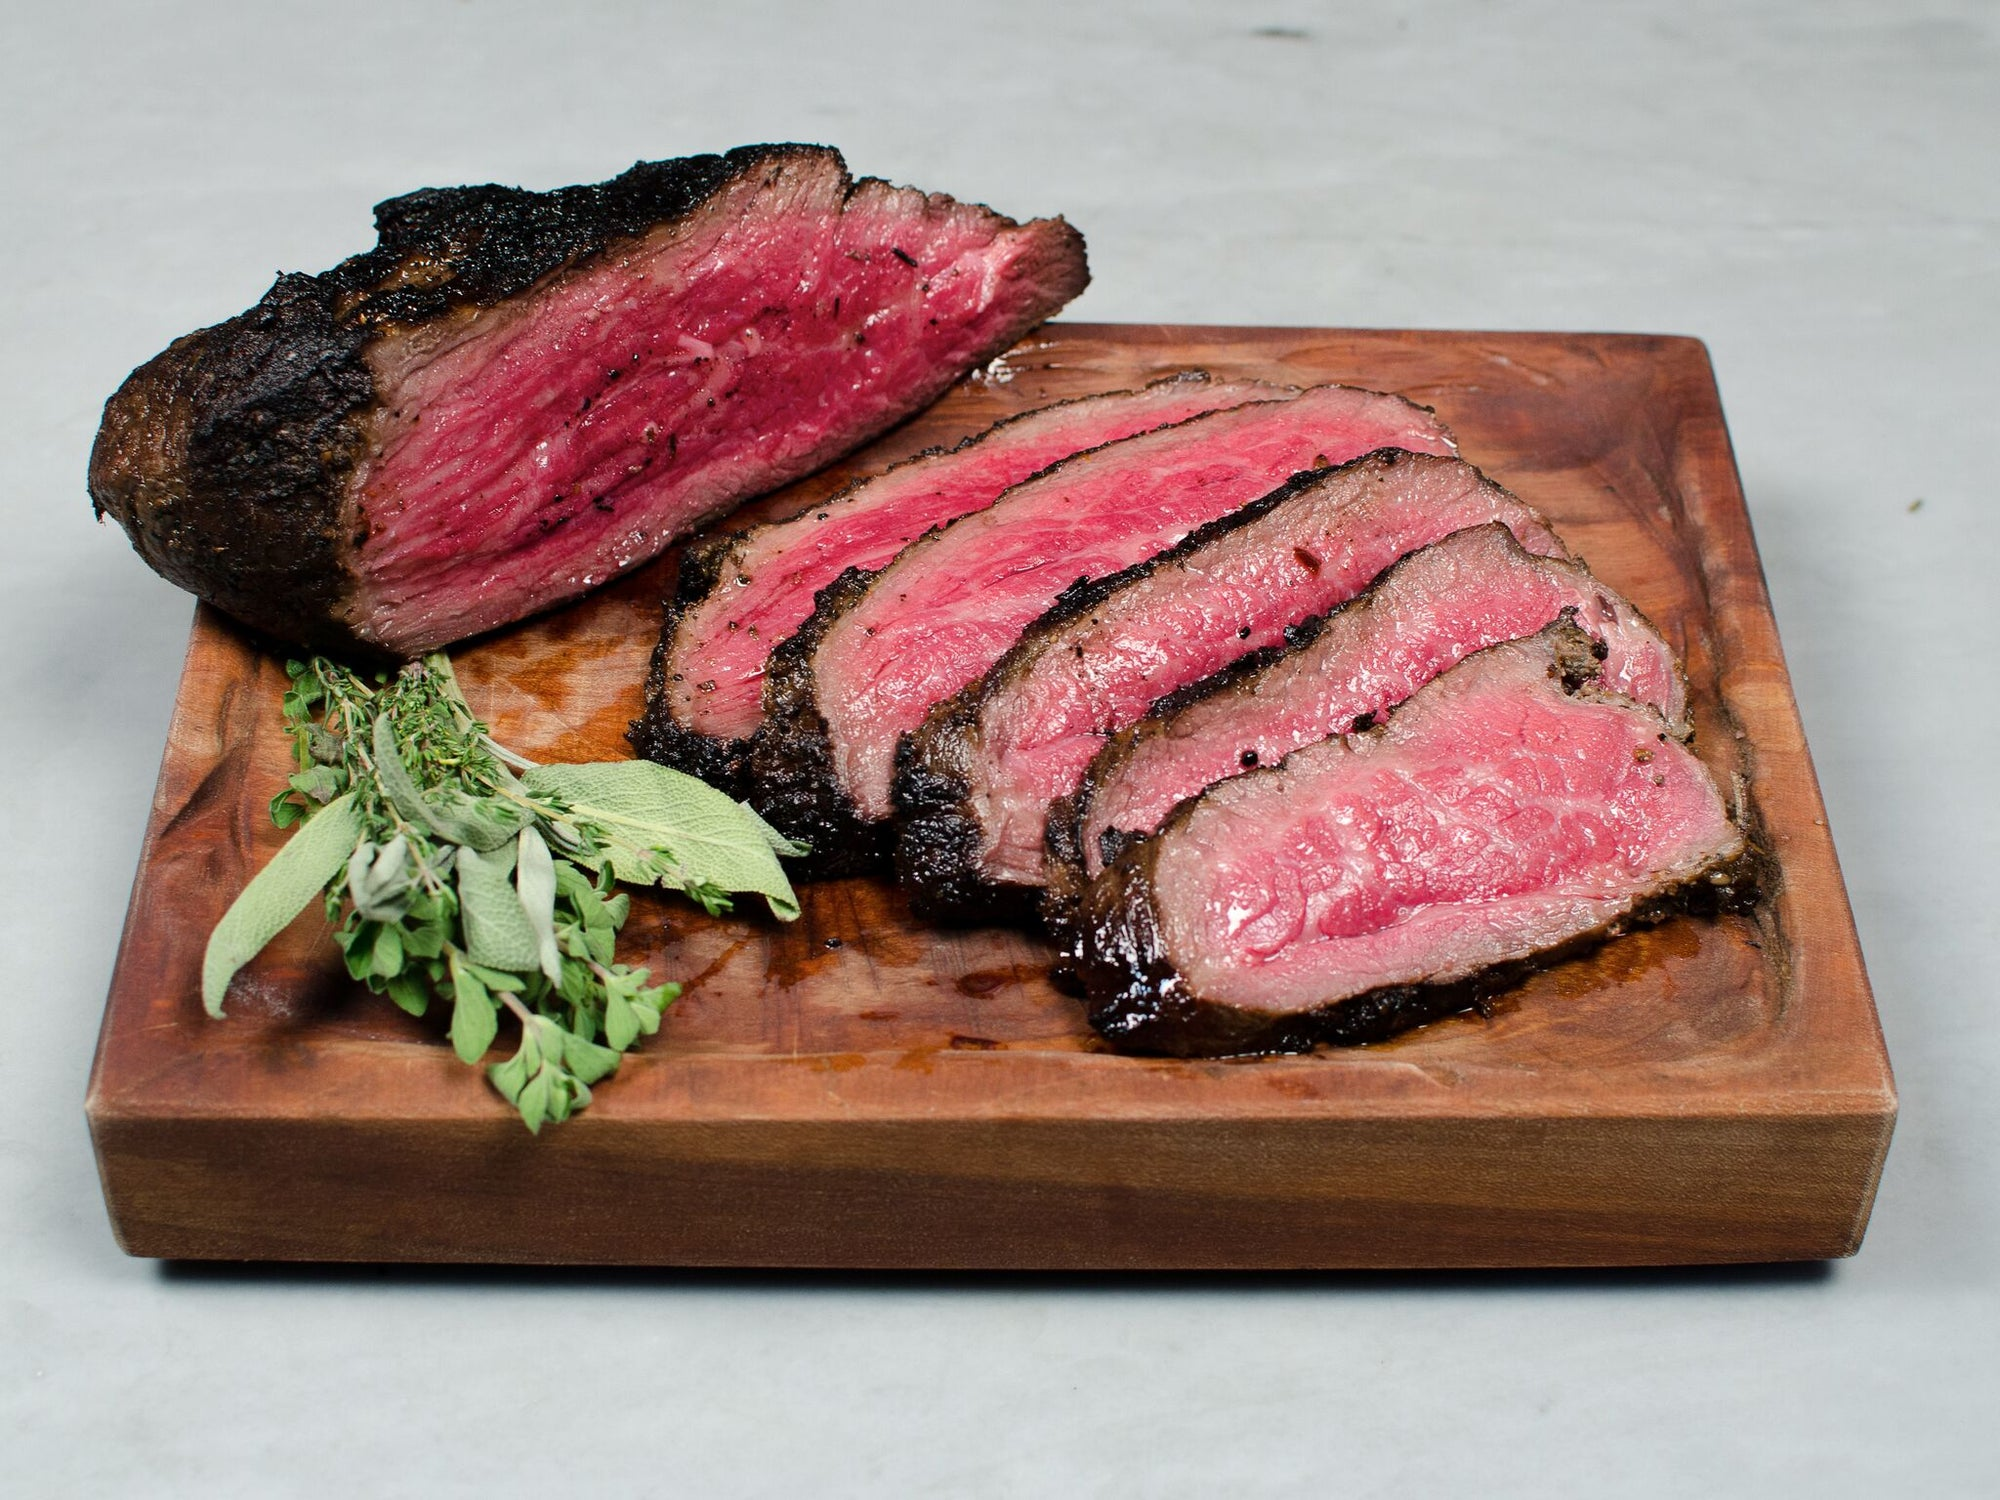 Try Our Oven-Ready Tri-Tip Wagyu Roast 3 Ways!